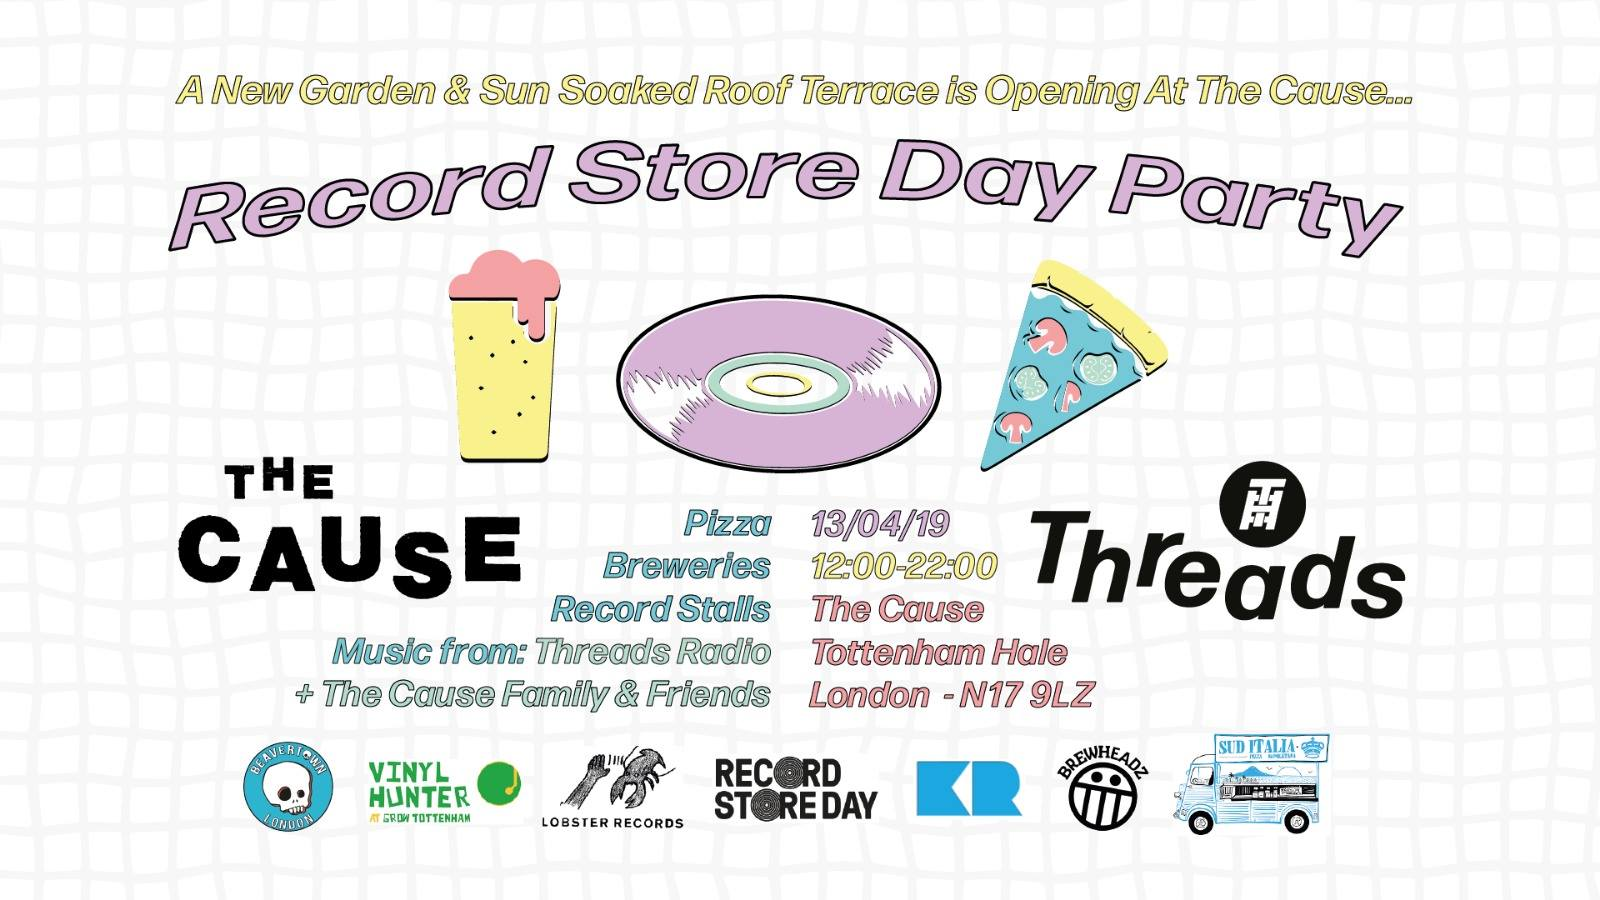 Record Store Day at The Cause (13/04/19)